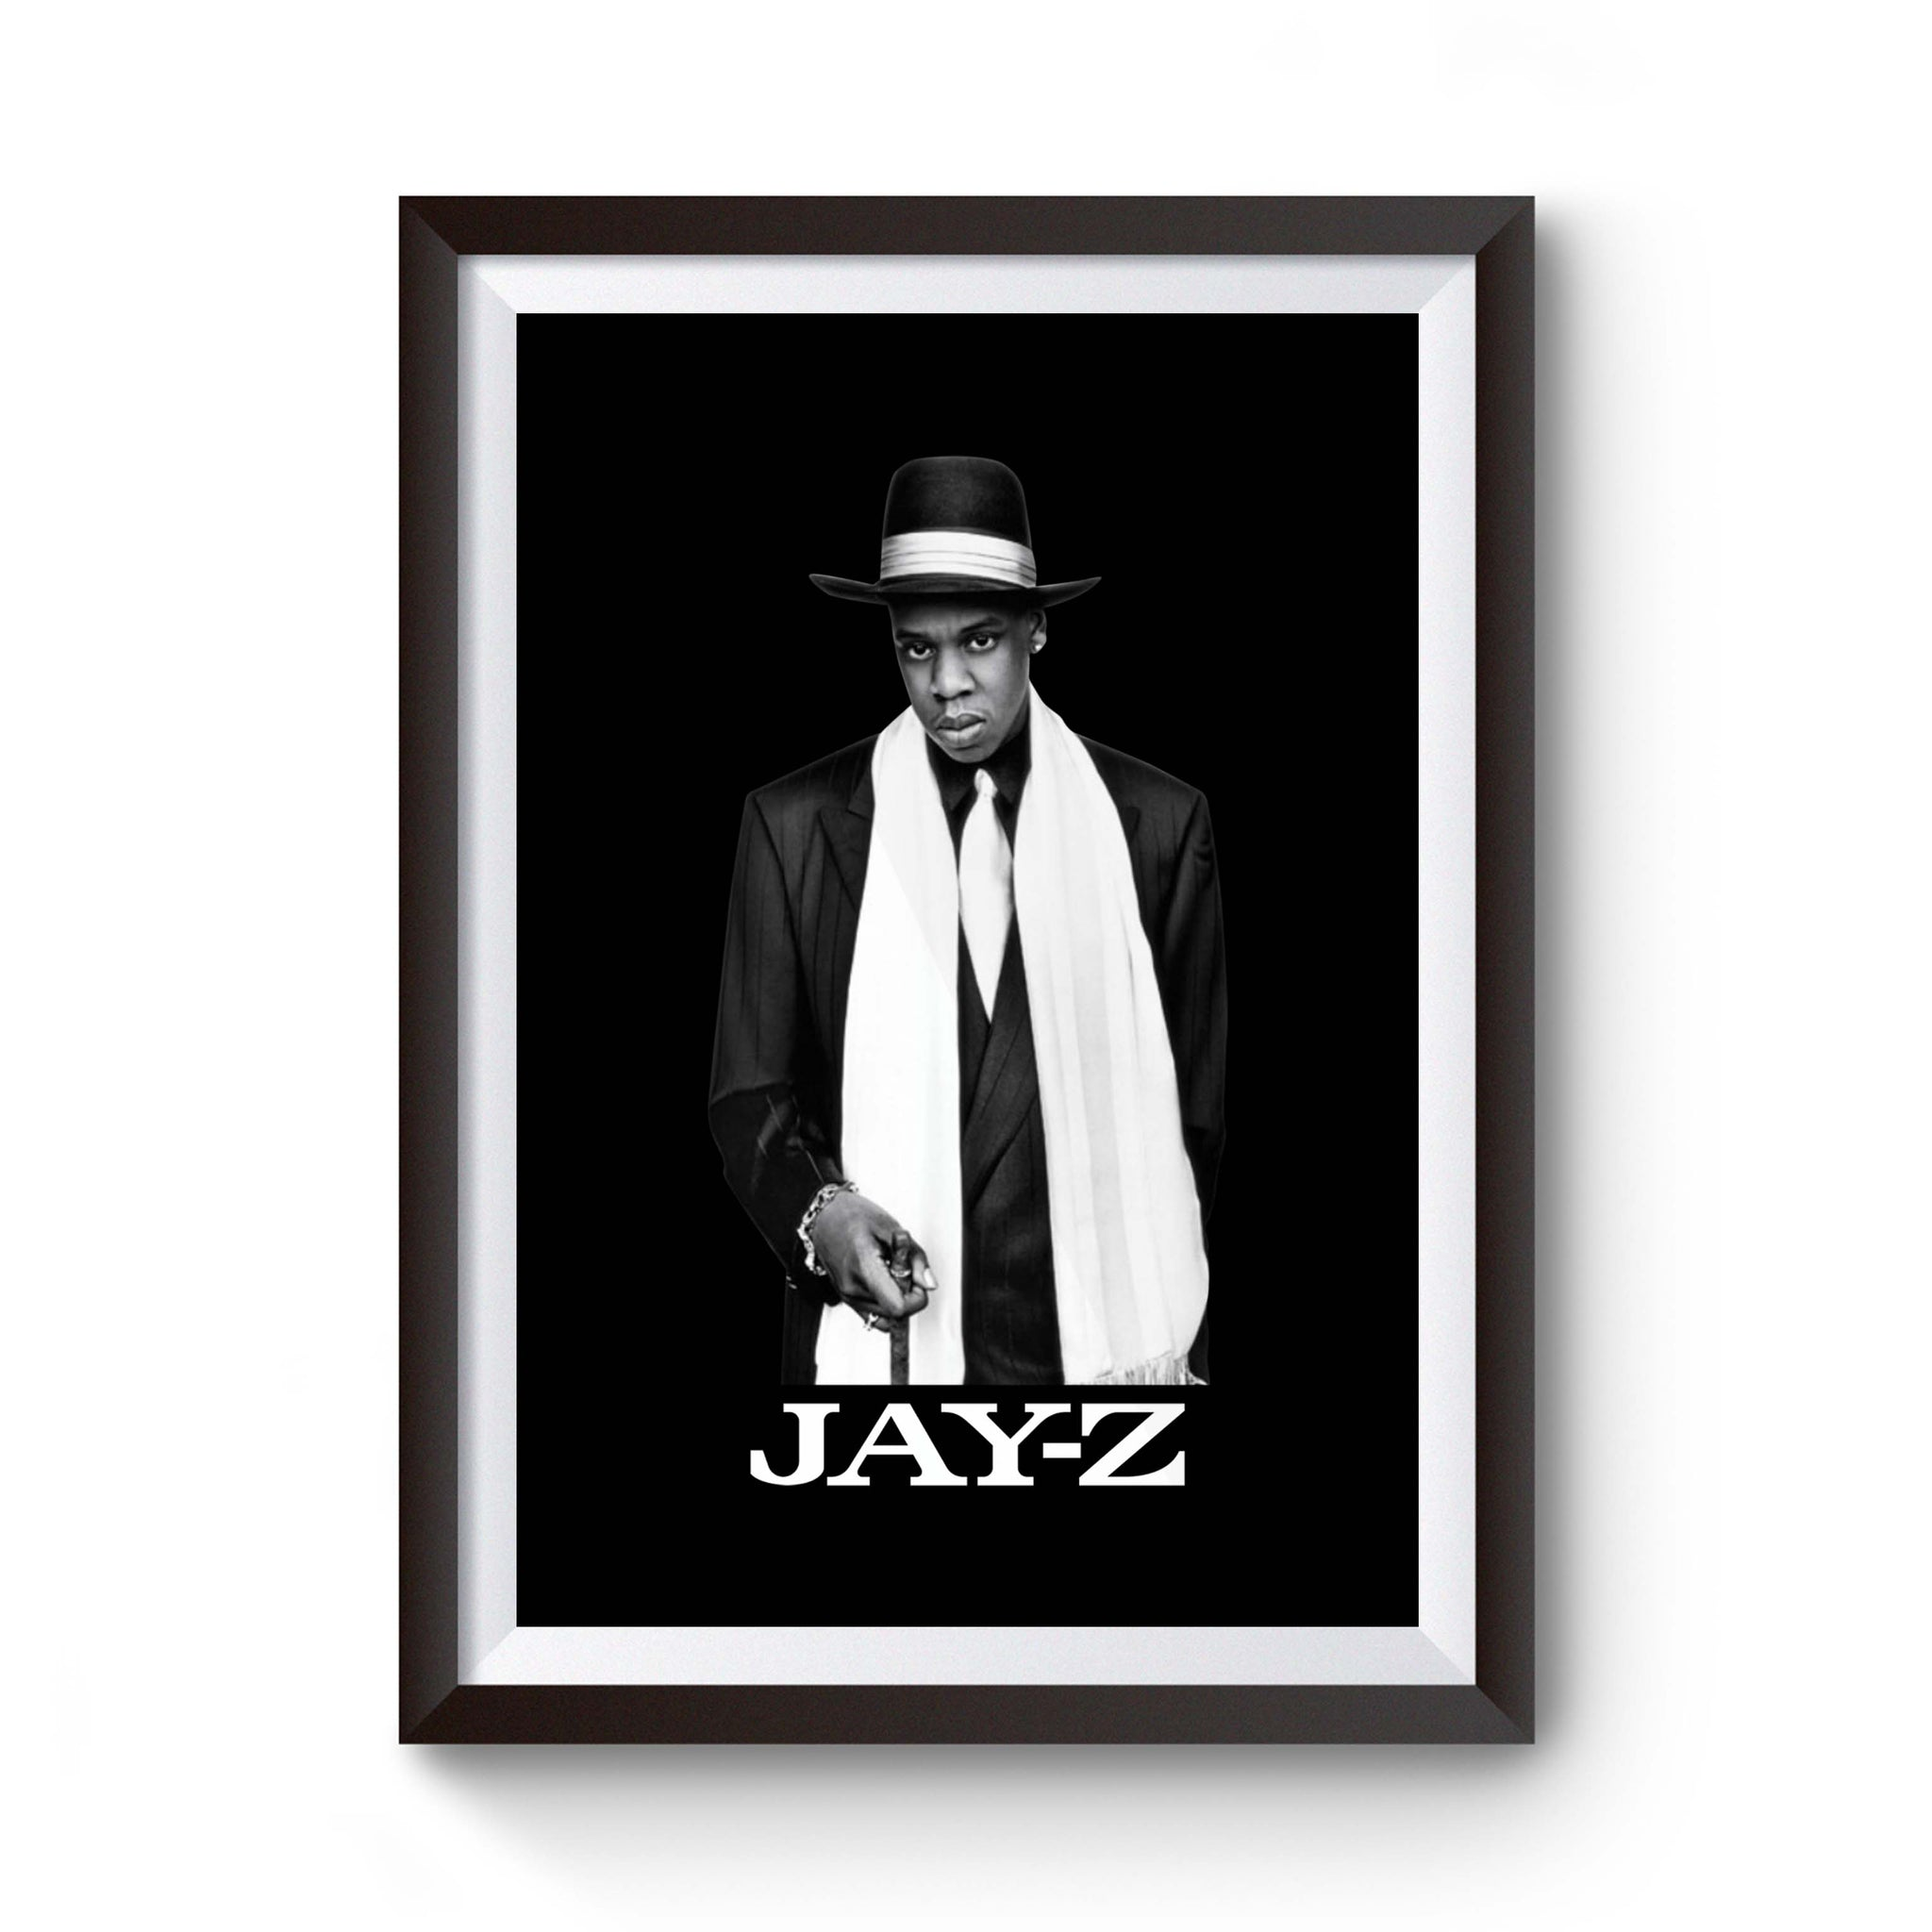 Jay Z Reasonable Doubt Hip Hop Music Rappers Jigga Roc A Fella Poster